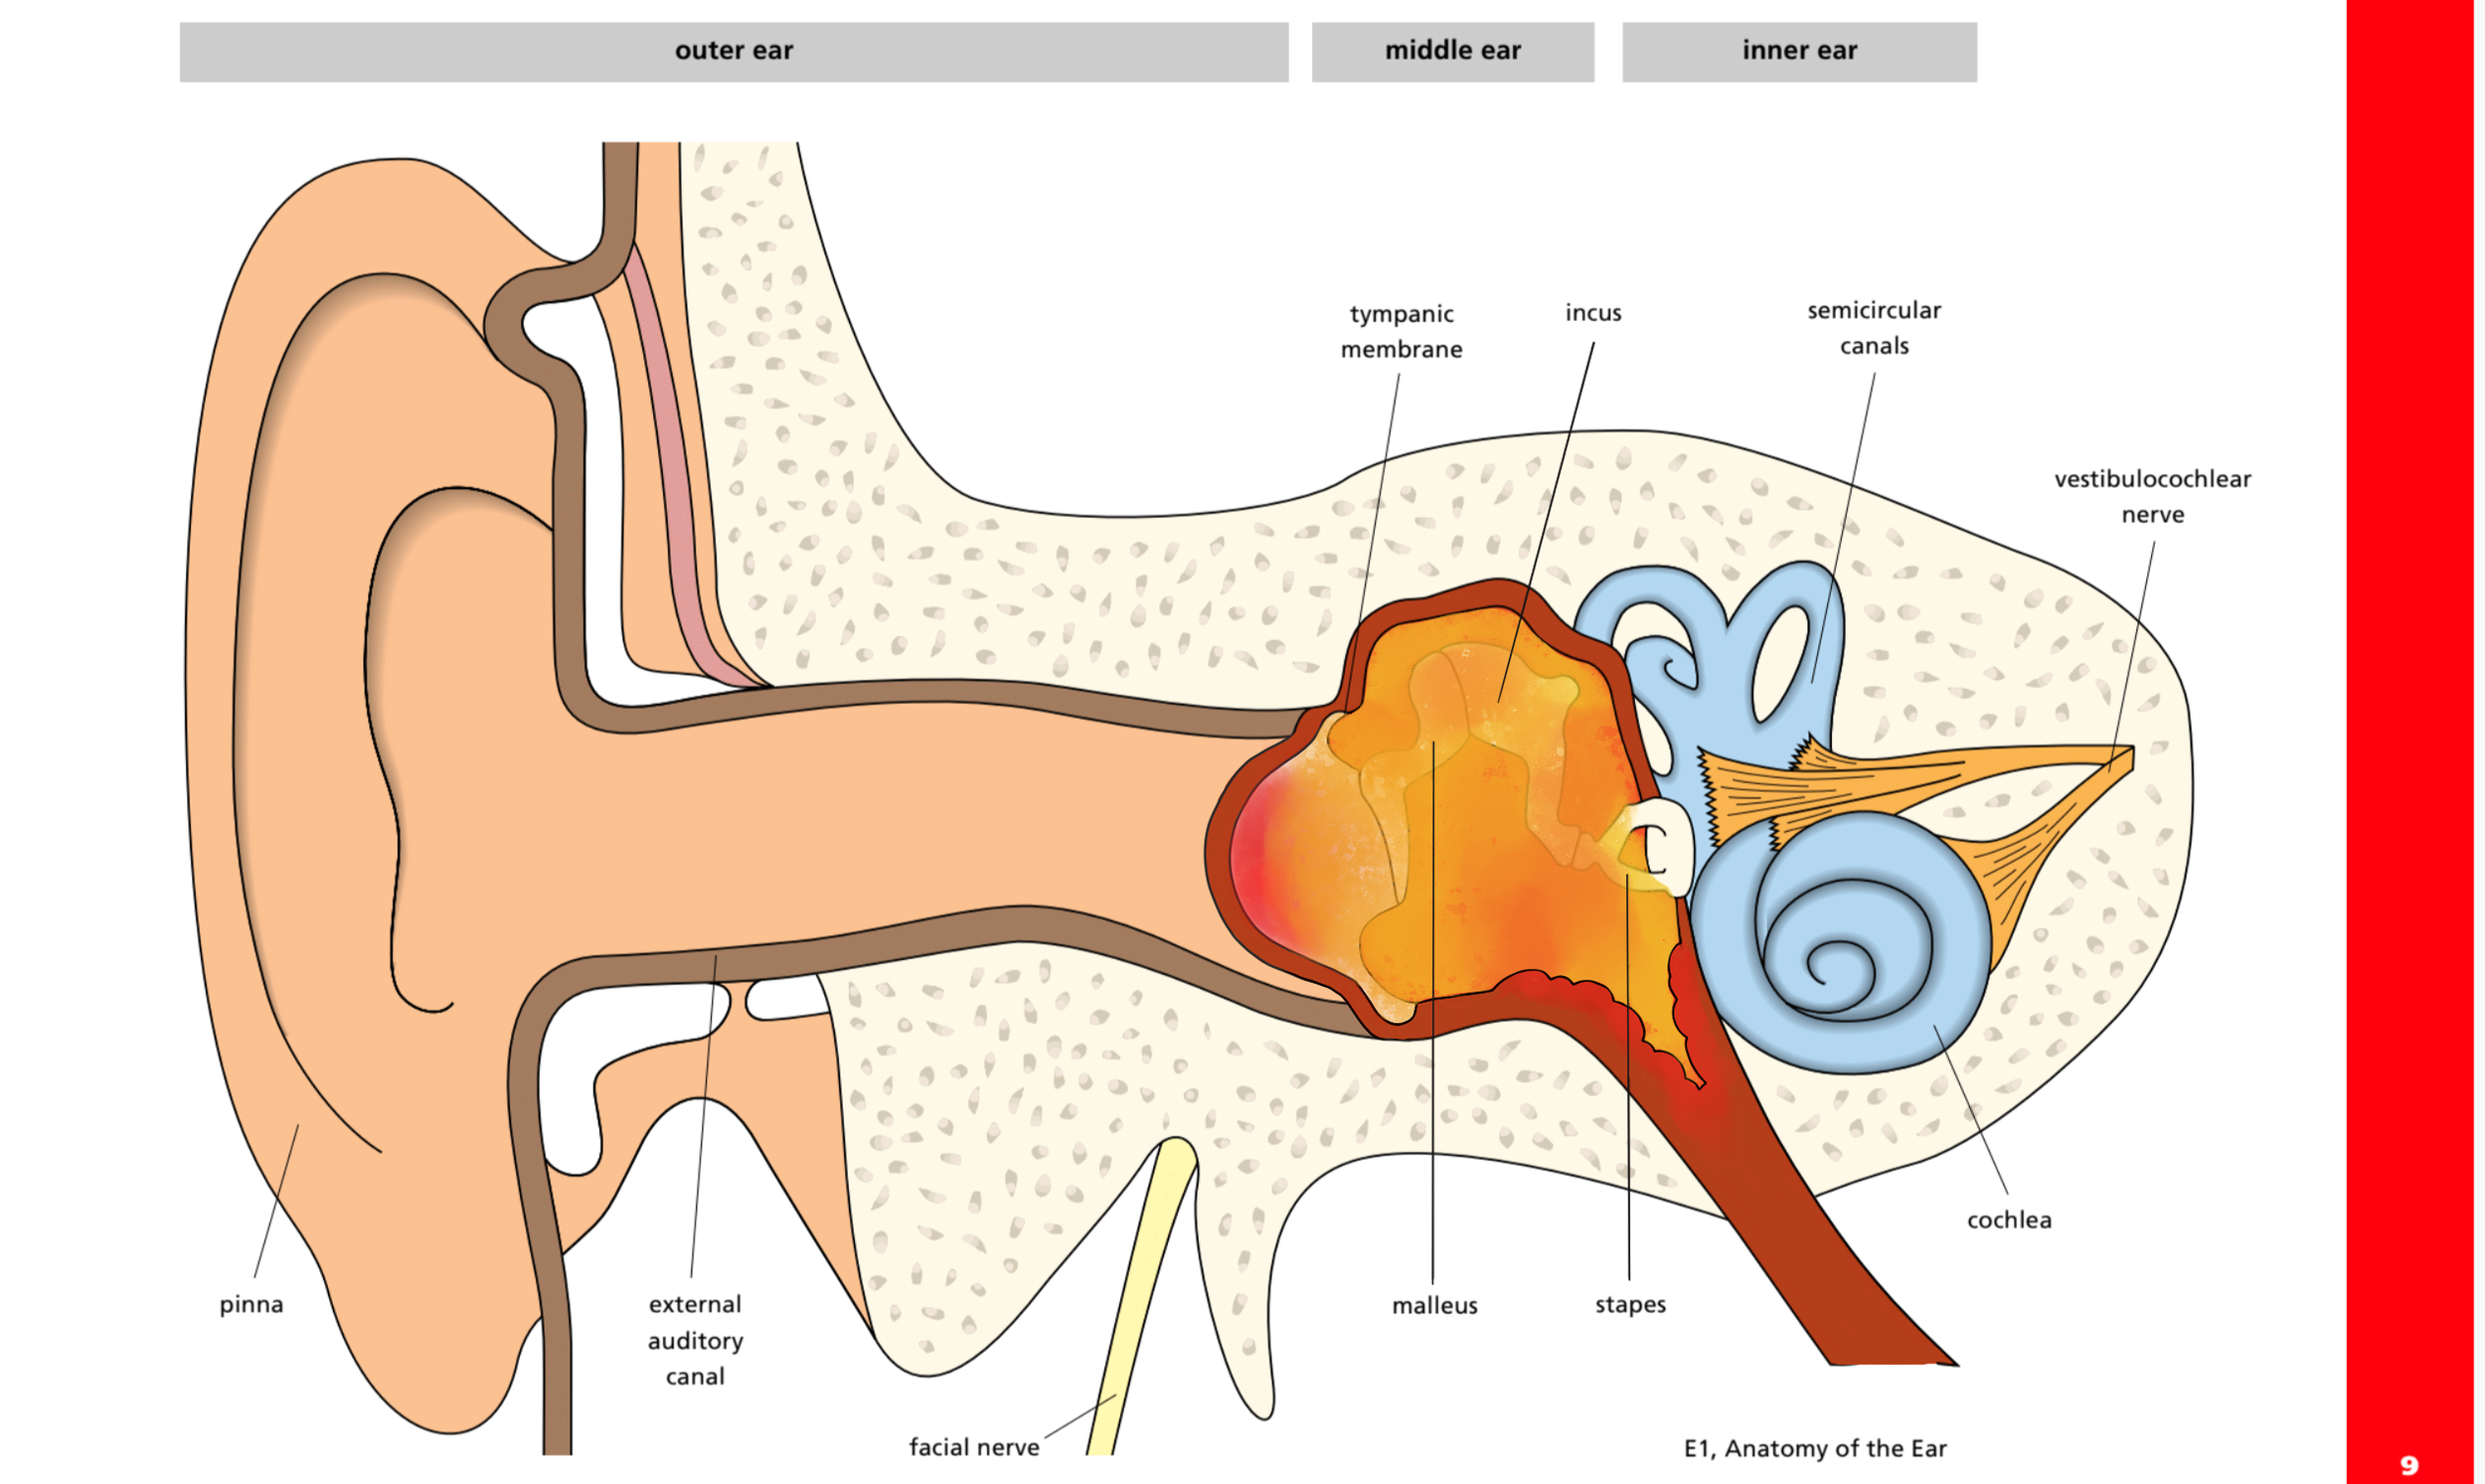 Acute otitis media with a middle ear full of pus distending the ear drum